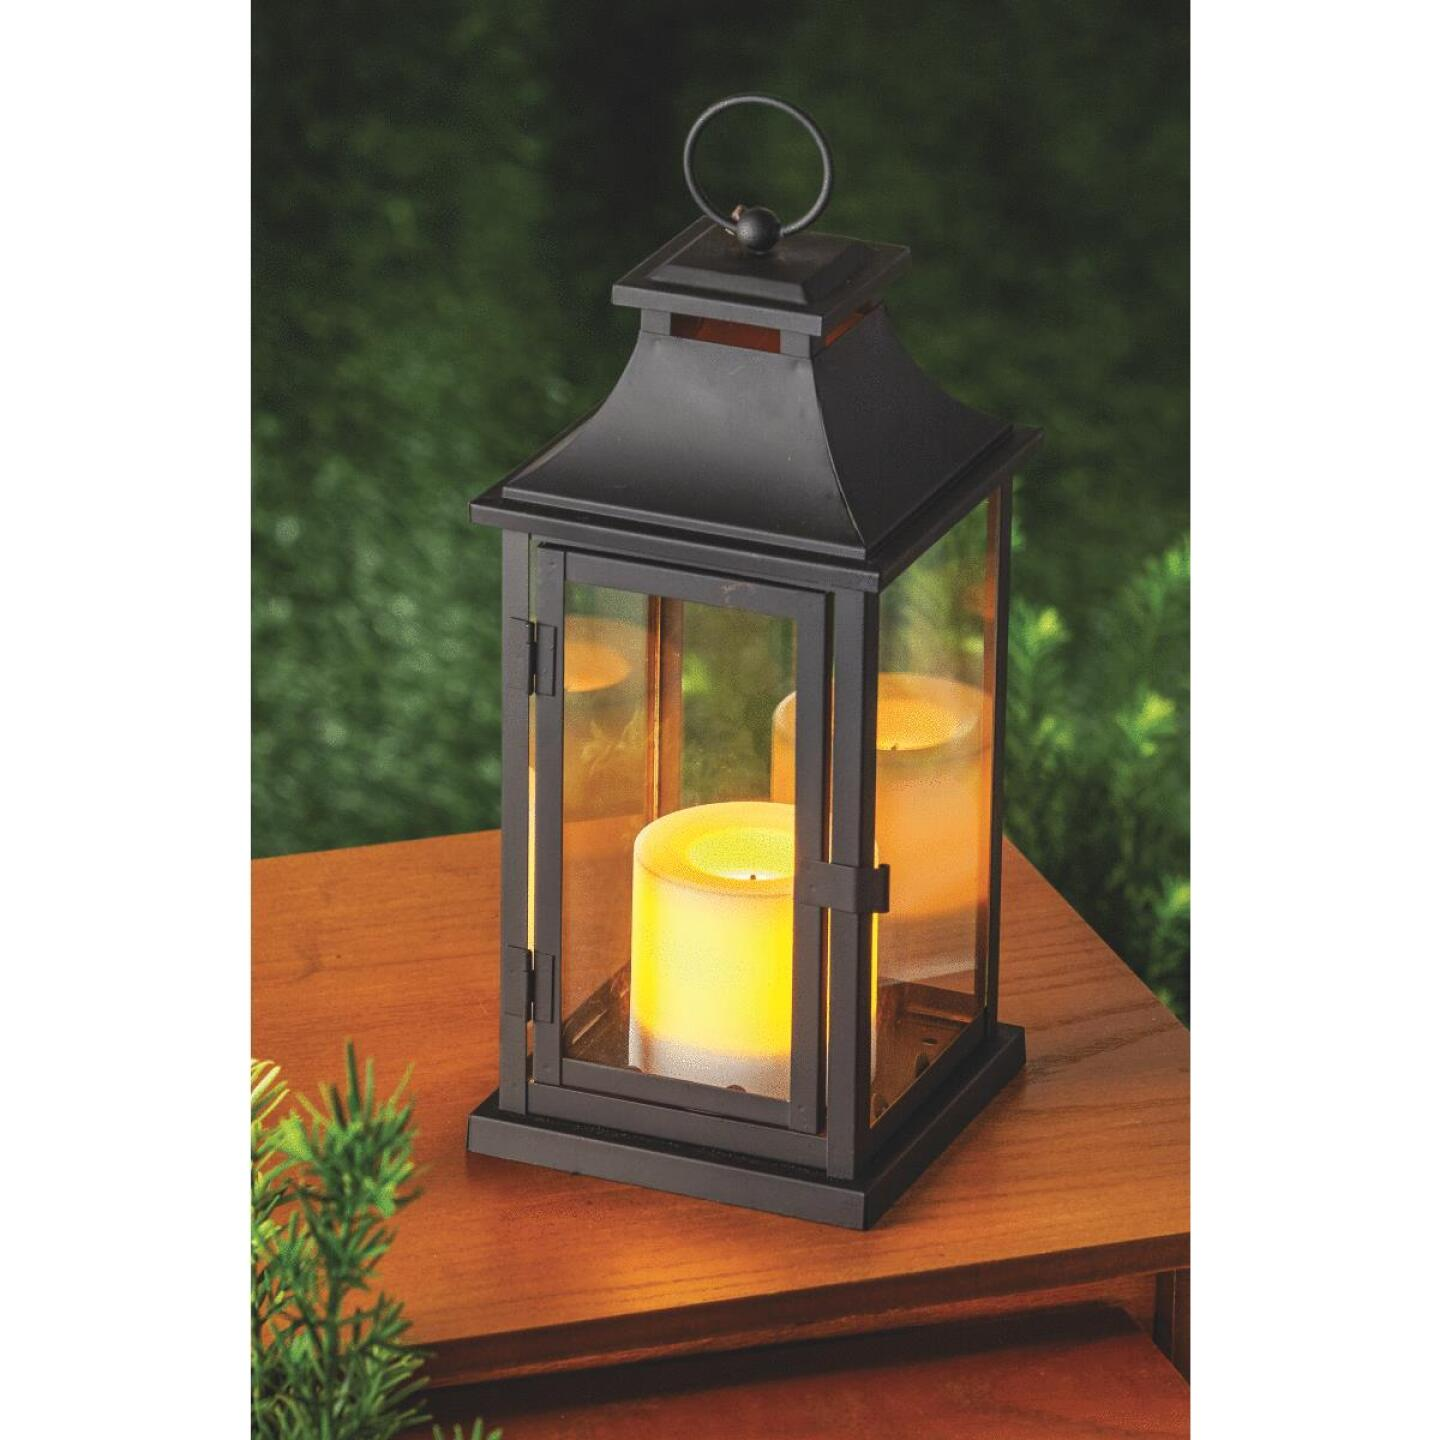 Paradise 12 In. H. x 5.31 In. Dia. Black Metal LED Lantern Patio Light Image 3